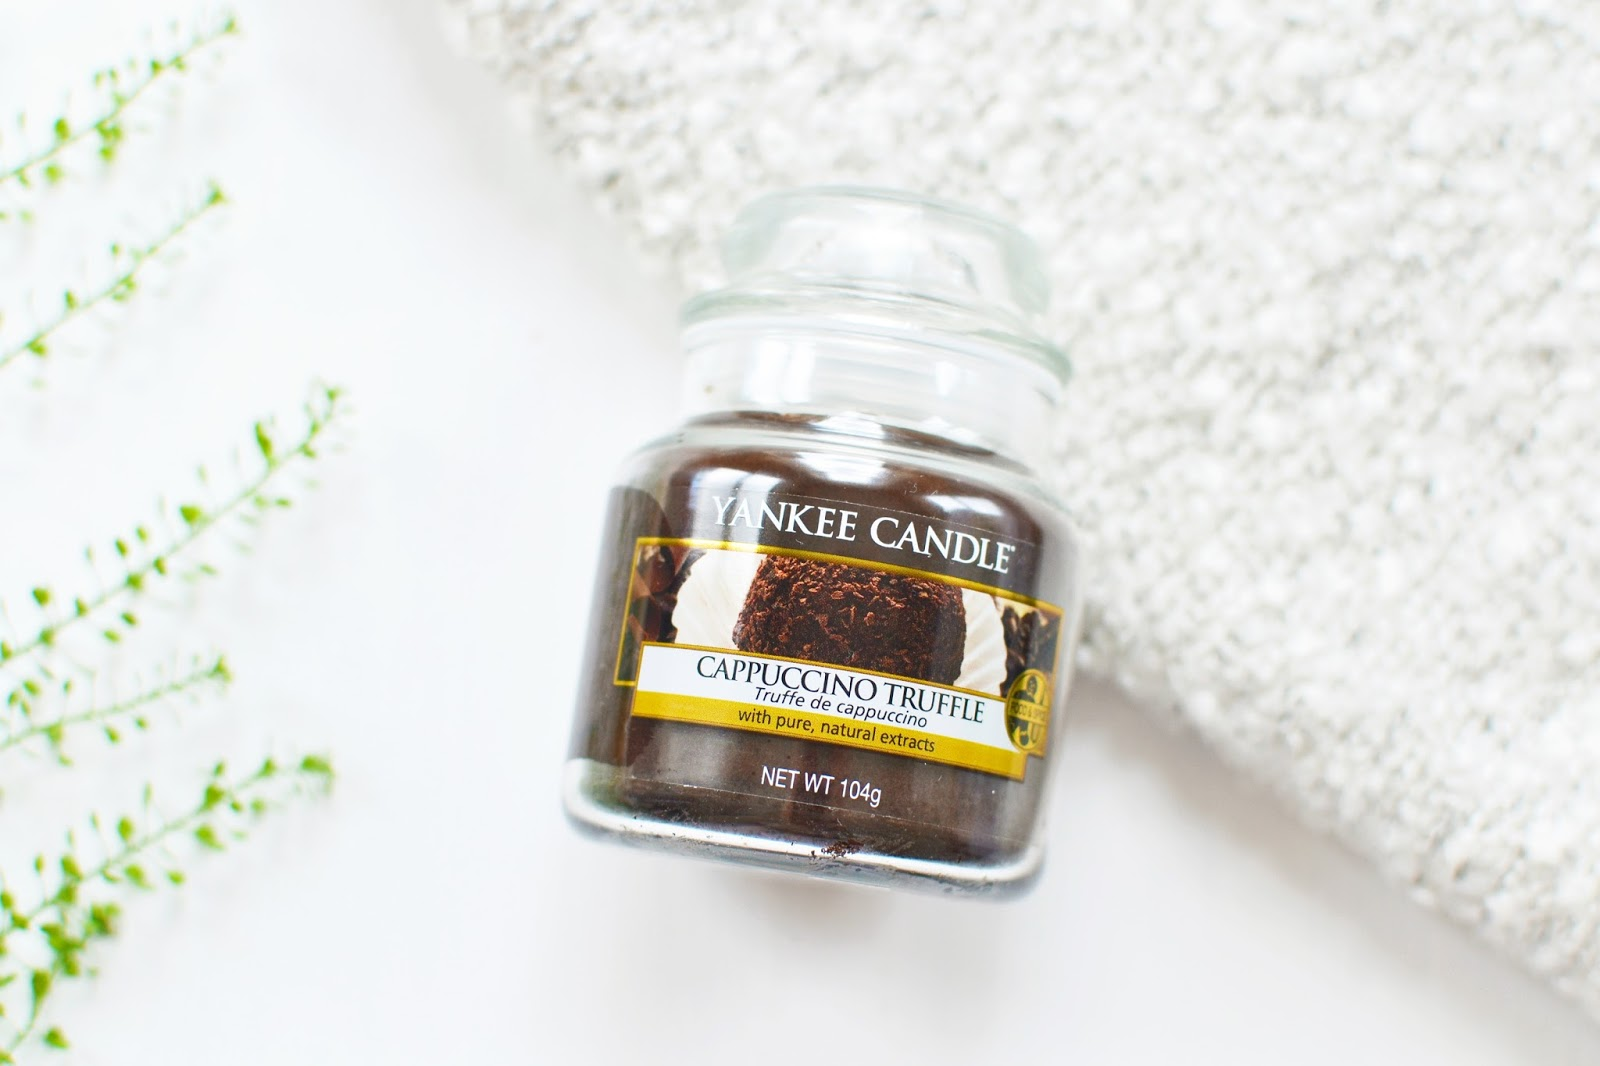 Cappuccino Truffle Scented Candle from Yankee Candle Cafe Culture Collection